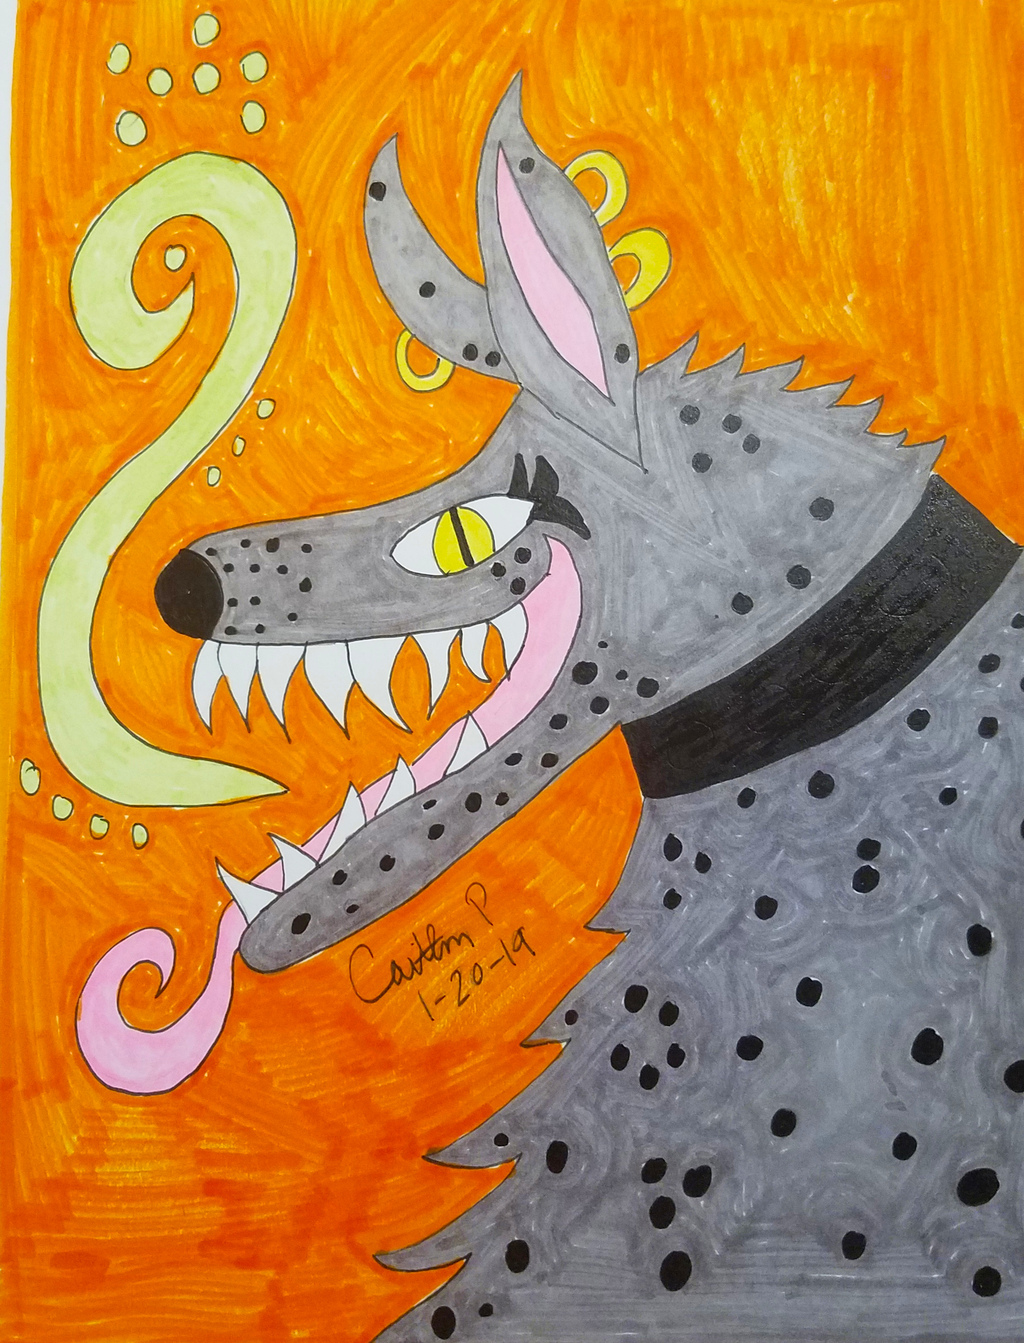 Most recent image: Posion Wolf